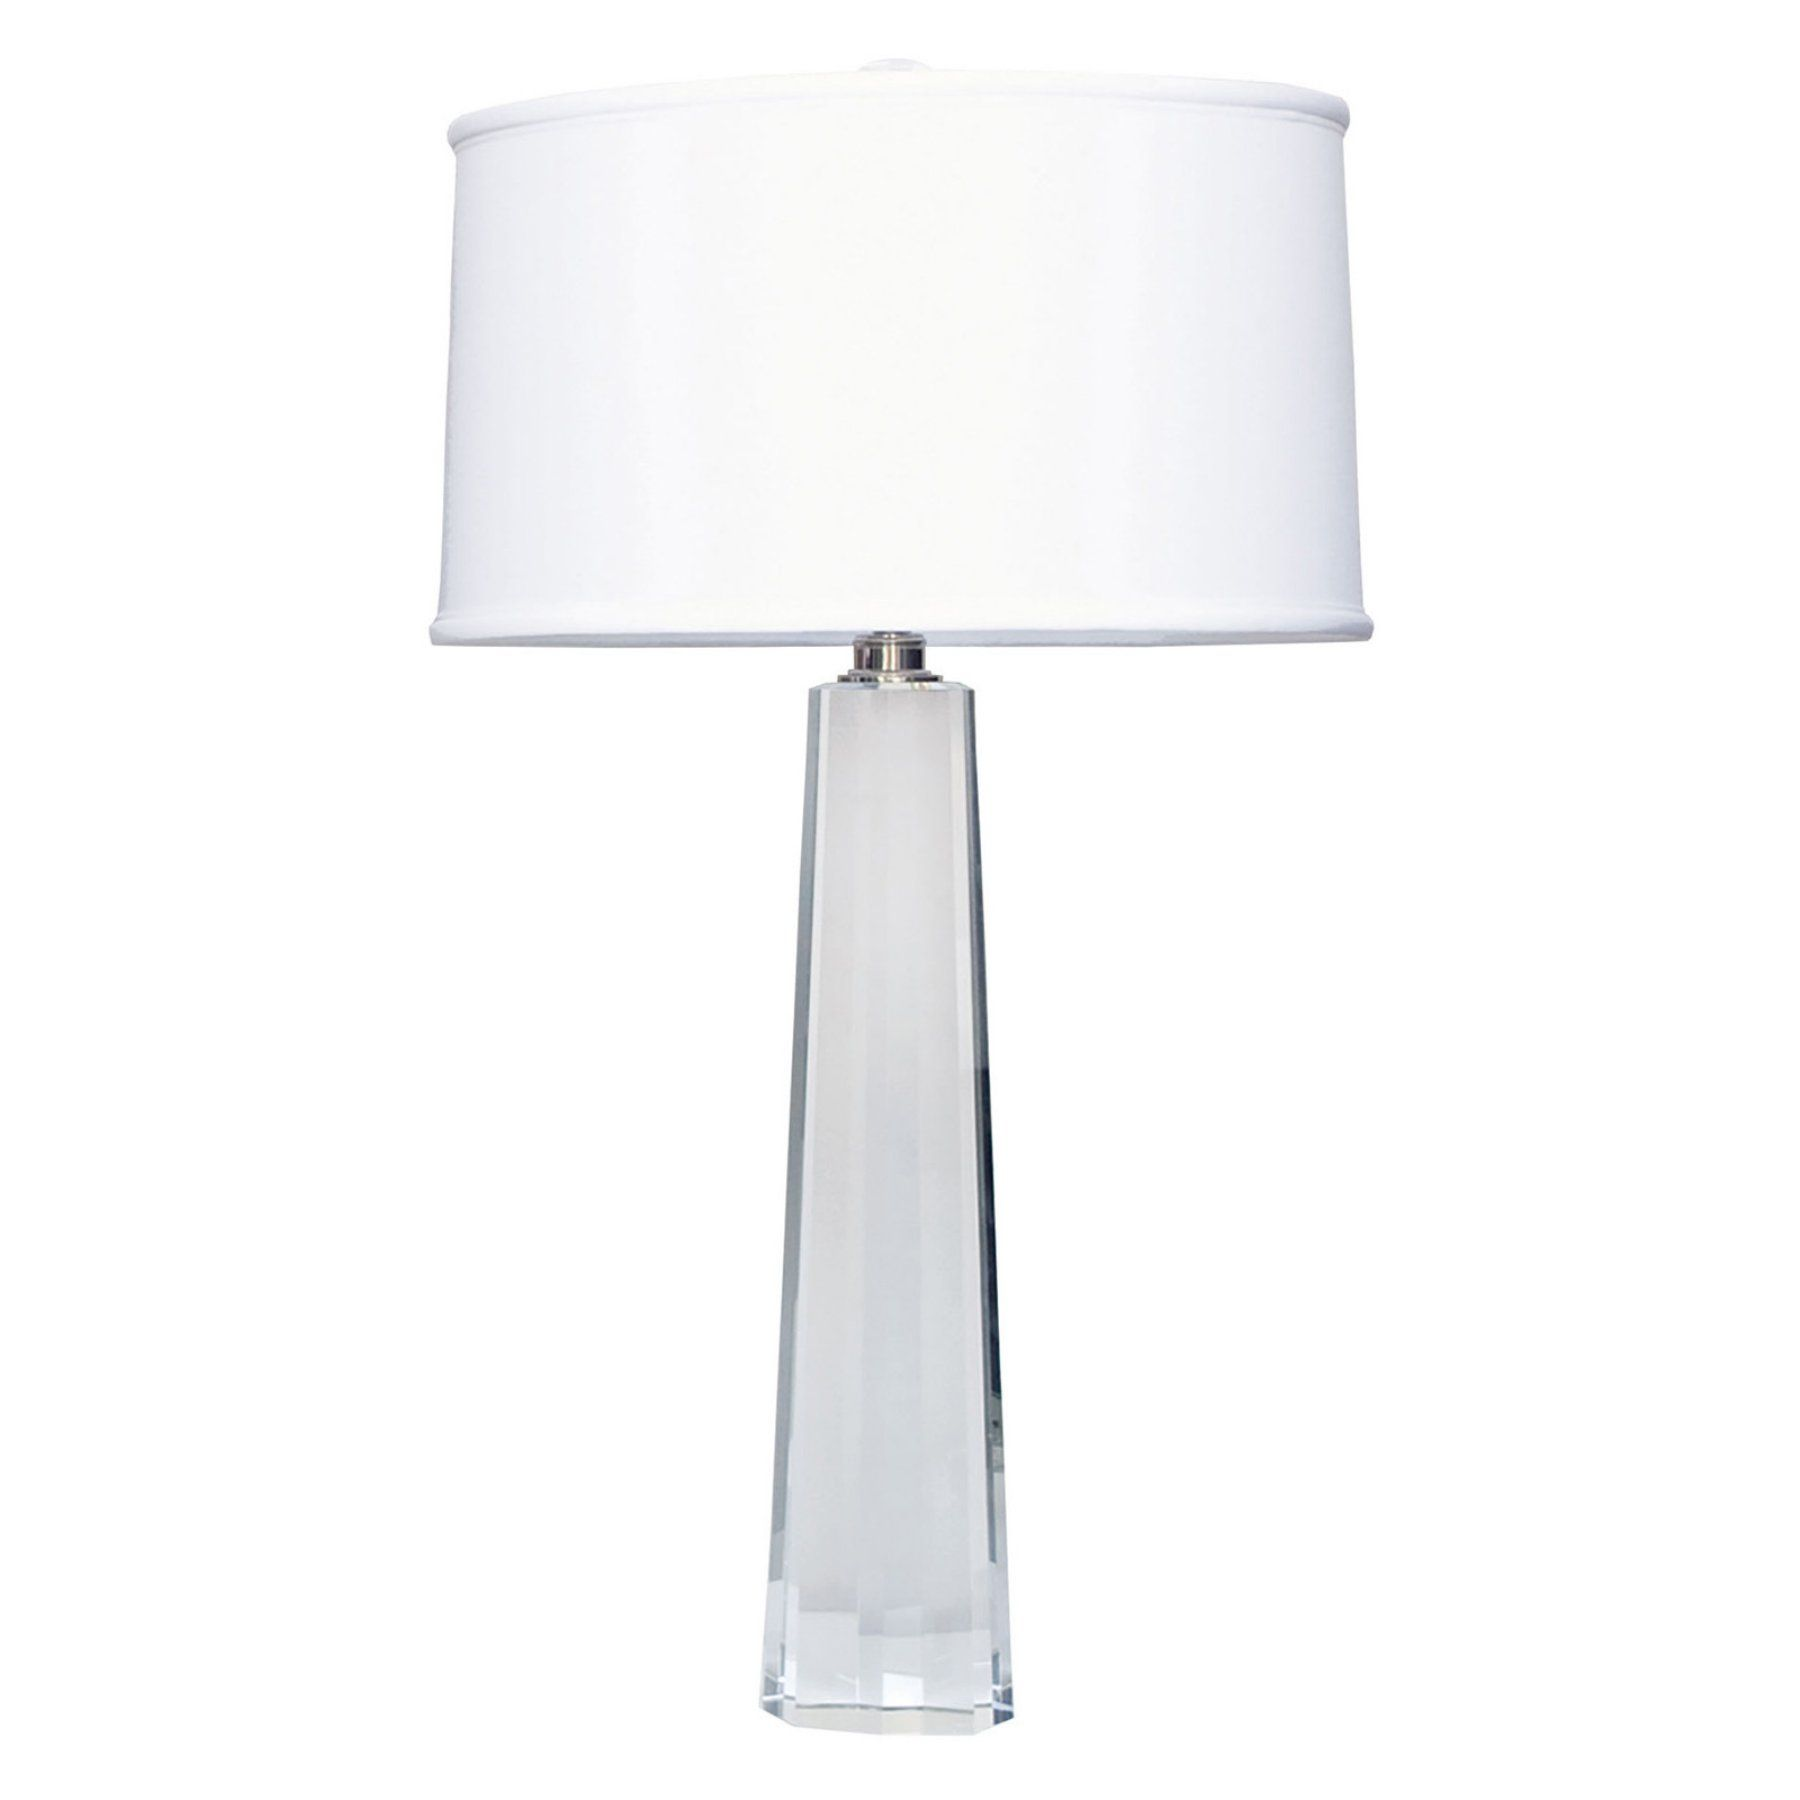 Lamp Works 729 Crystal Table Lamp  729 Led